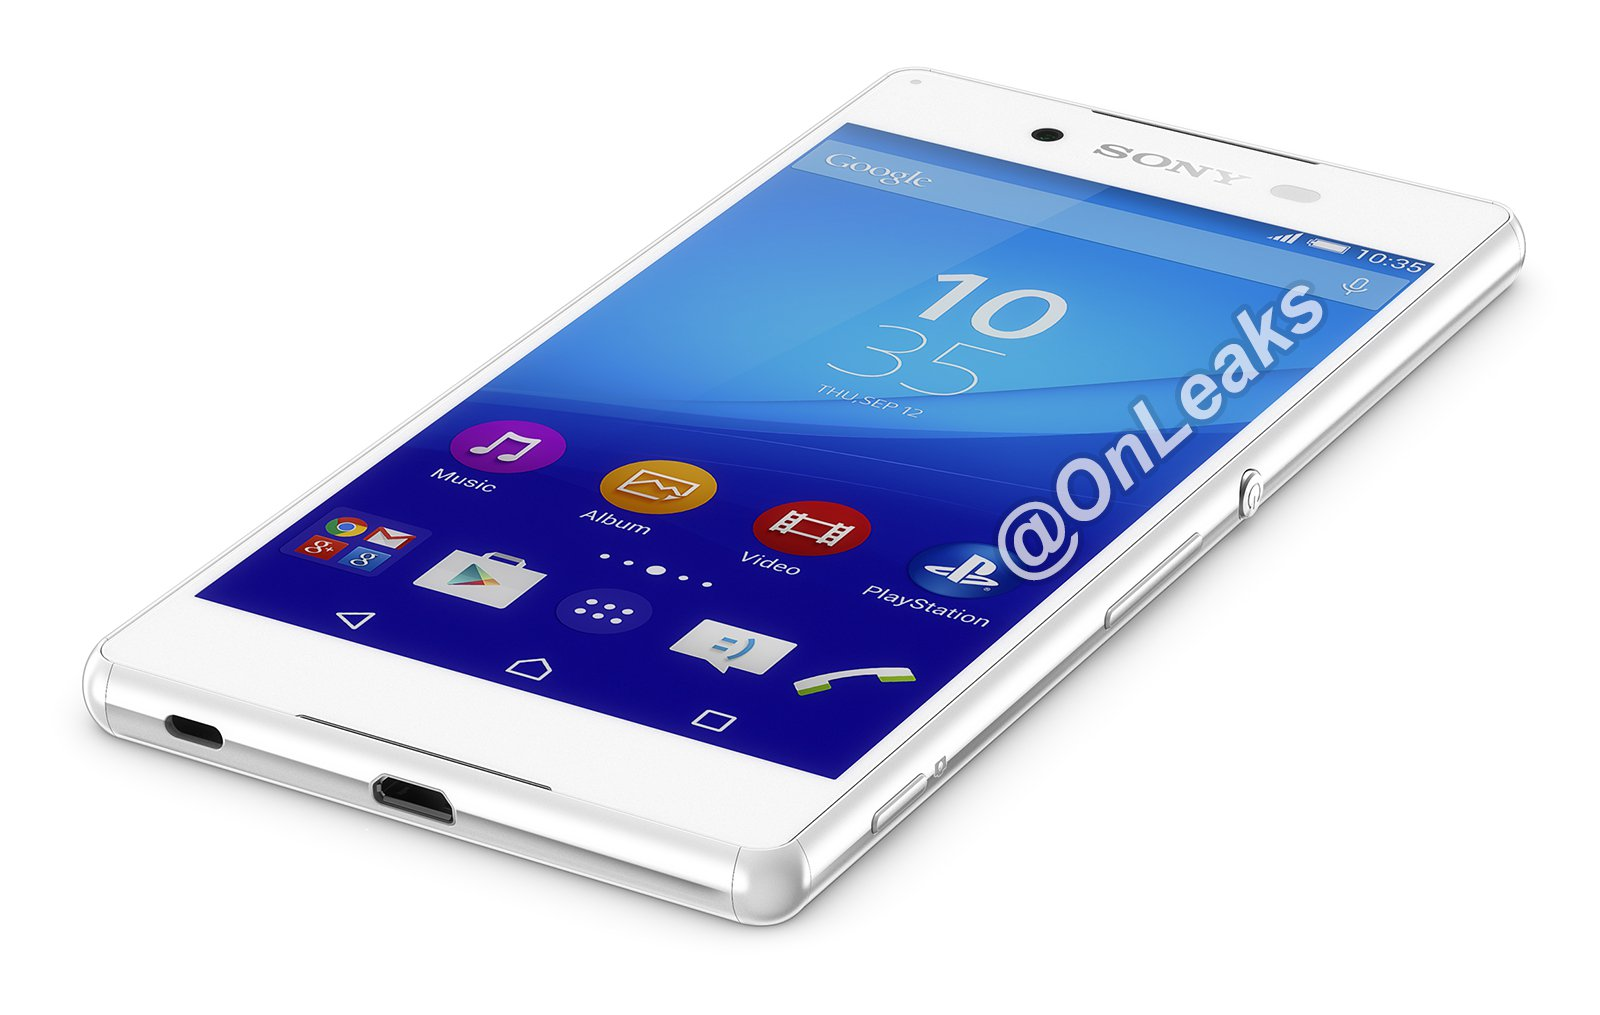 Official Images Of Sony Xperia Z4 Leaked